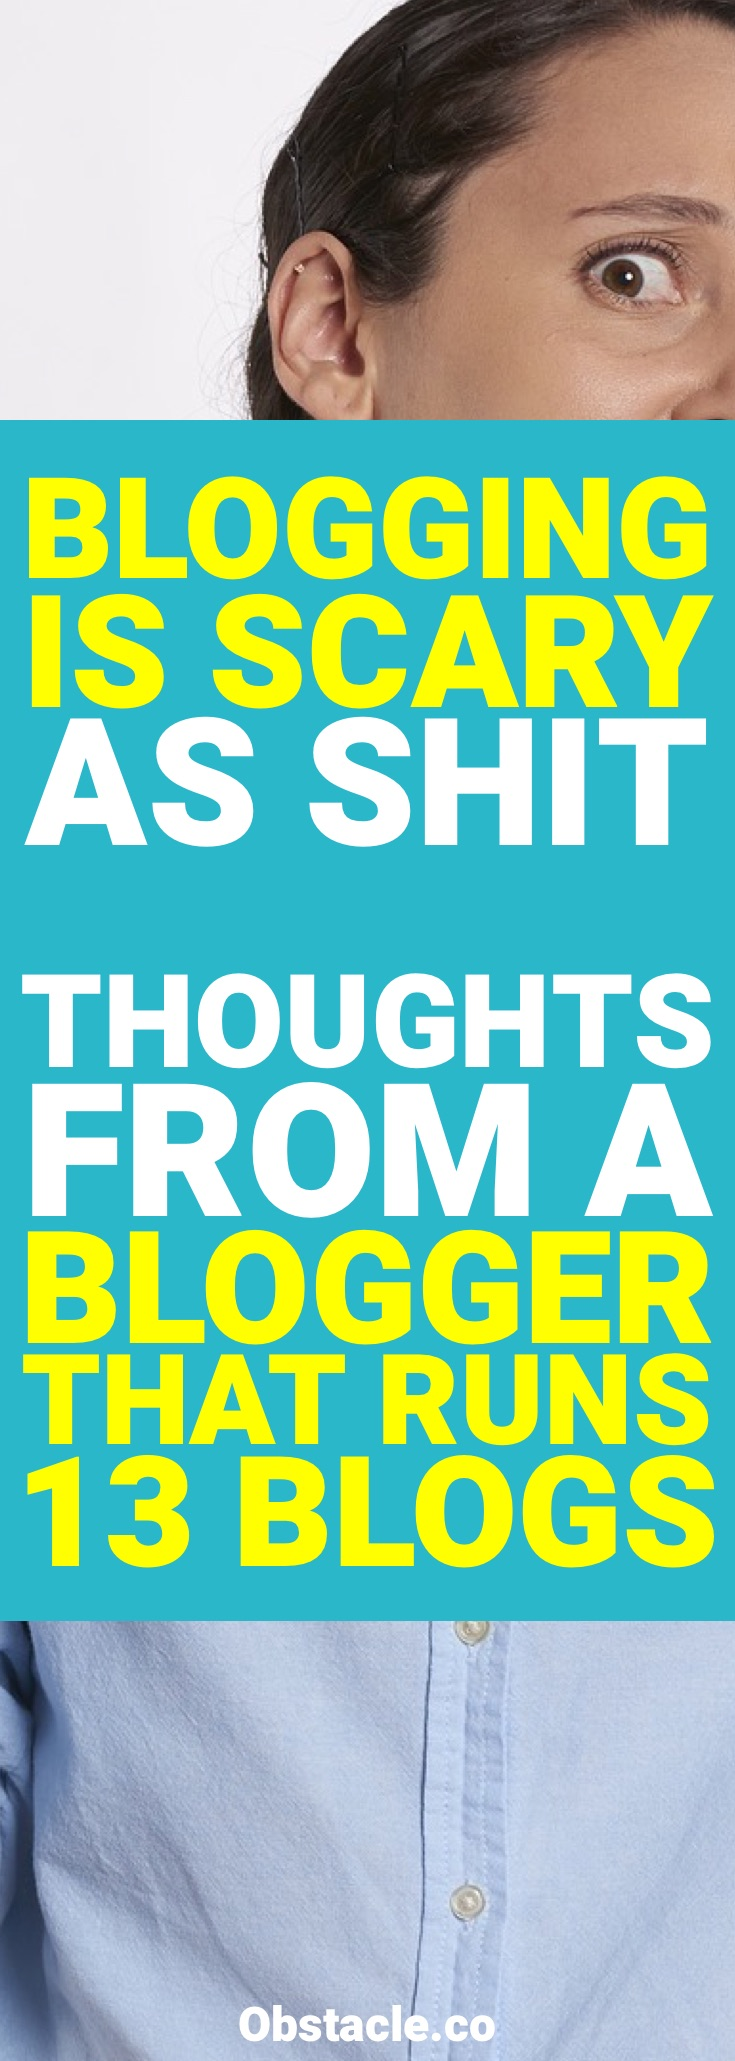 Why Blogging Is Scary as Shit